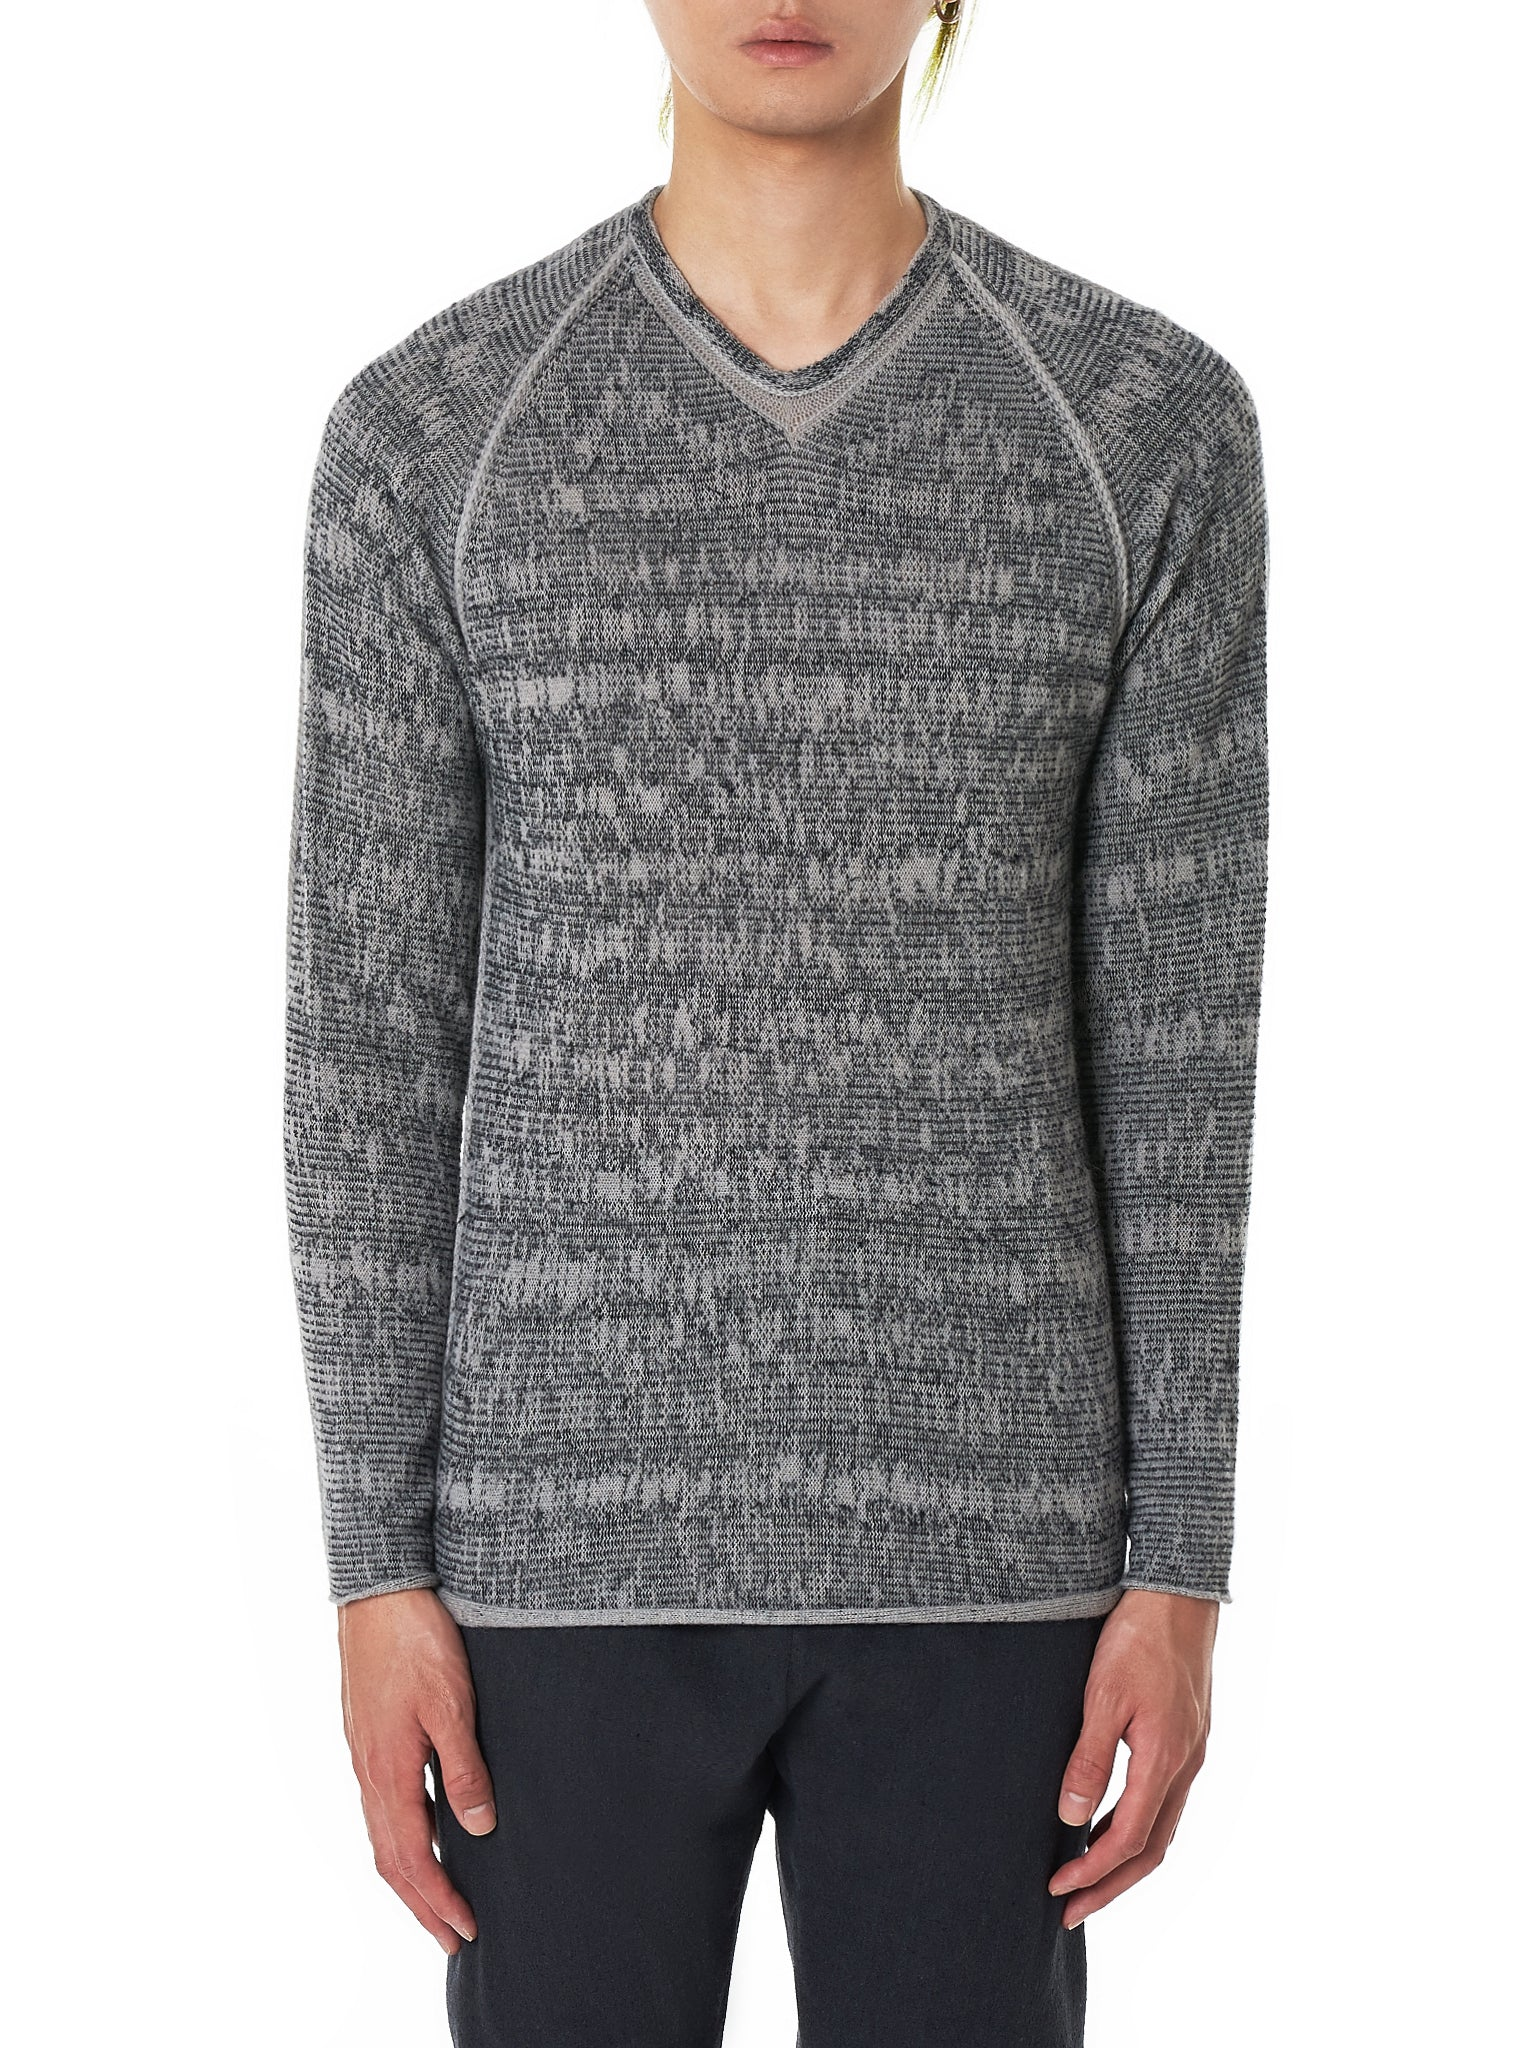 Label Under Construction Sweater - Hlorenzo Front